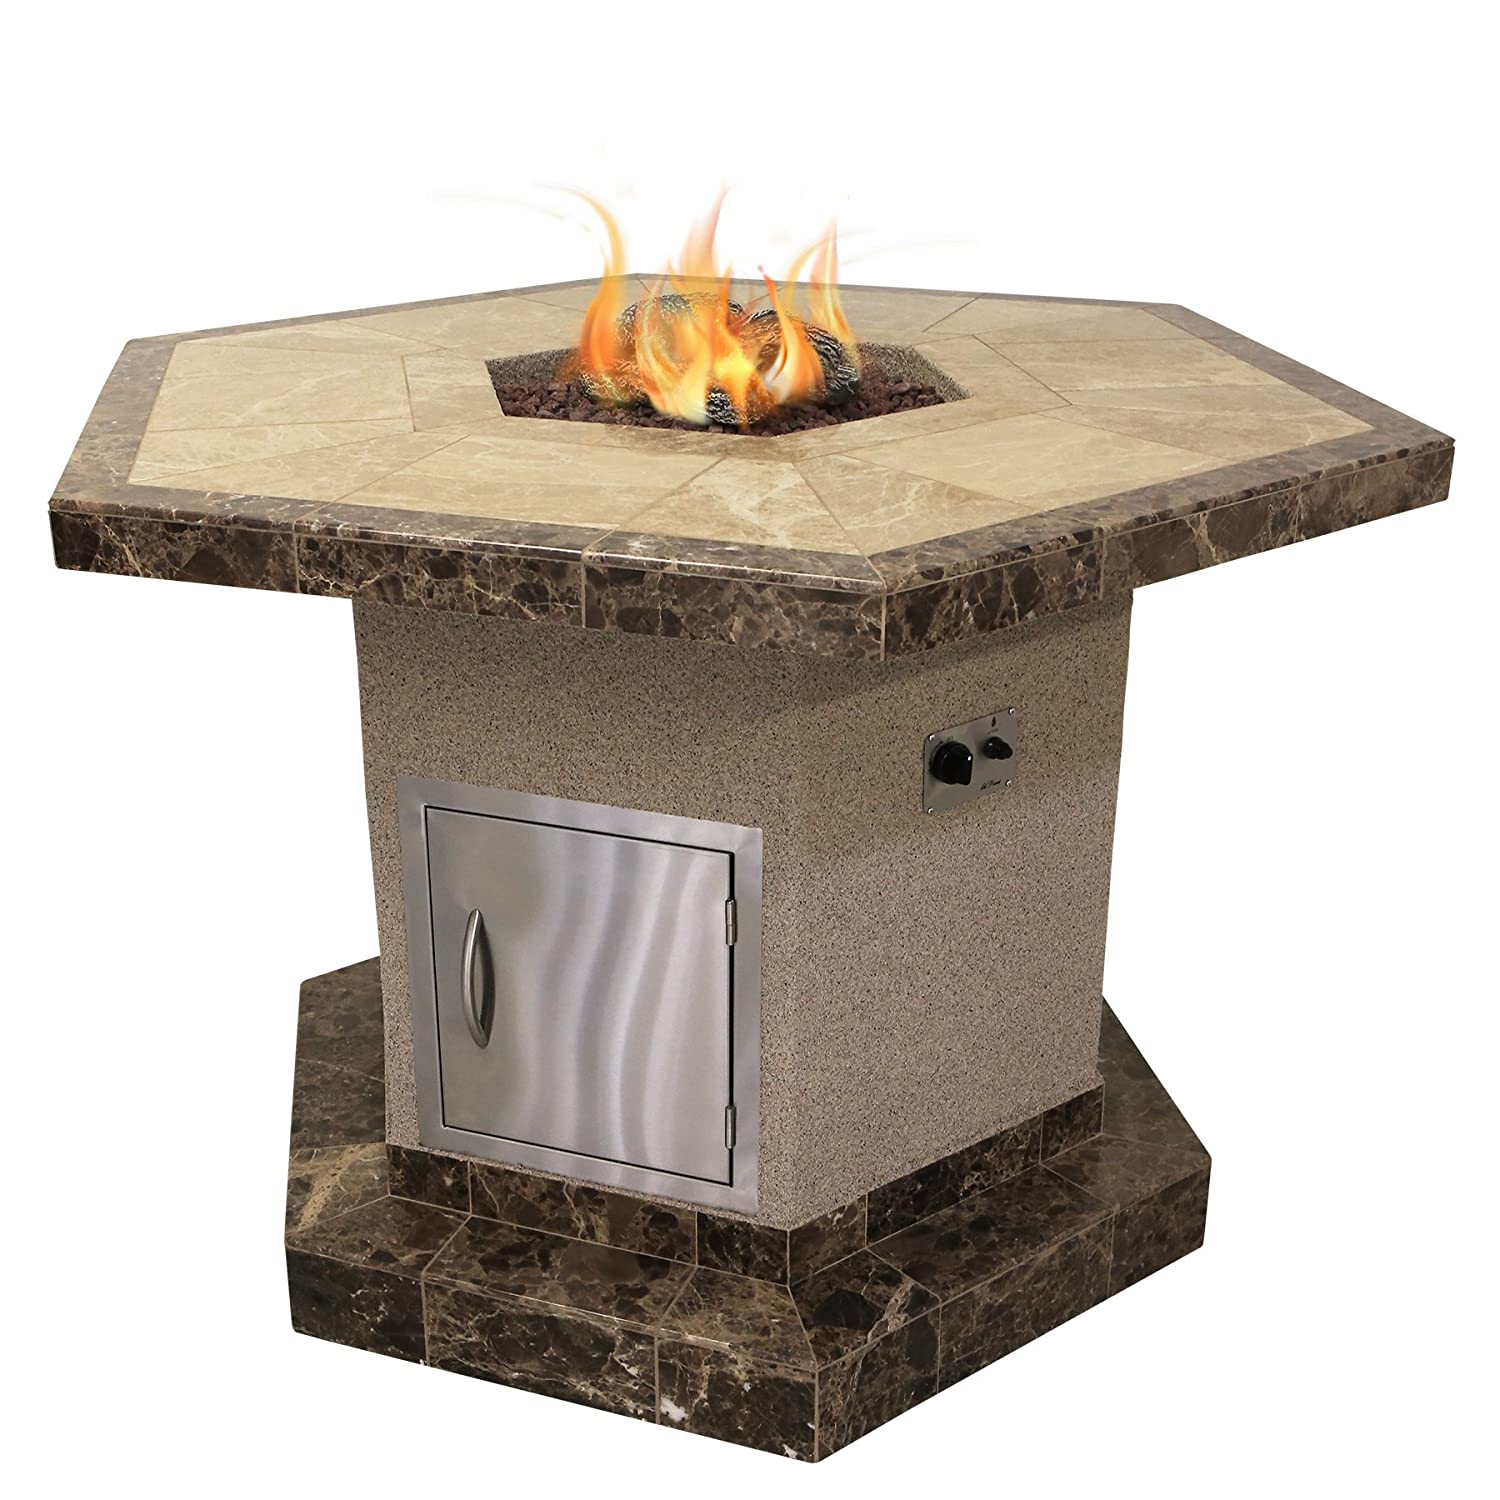 Cal Flame FPT-H1050T-1 Stucco and Tile Dining Height Square Propane Gas Fire Pit with Log Set and Lava Rocks